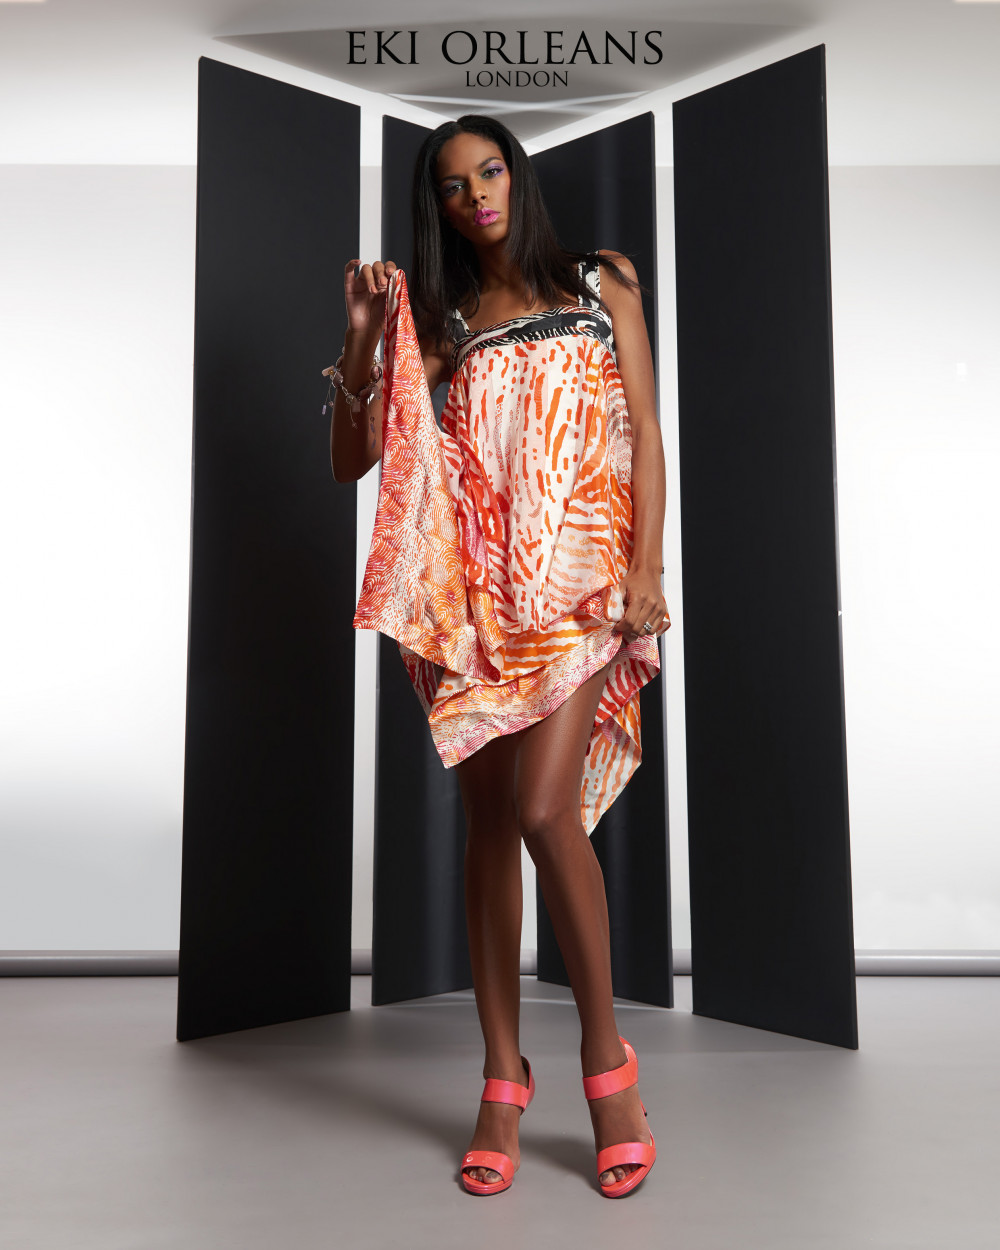 Eki Orleans Spring Summer 2016 Collection - BellaNaija - November 2015003